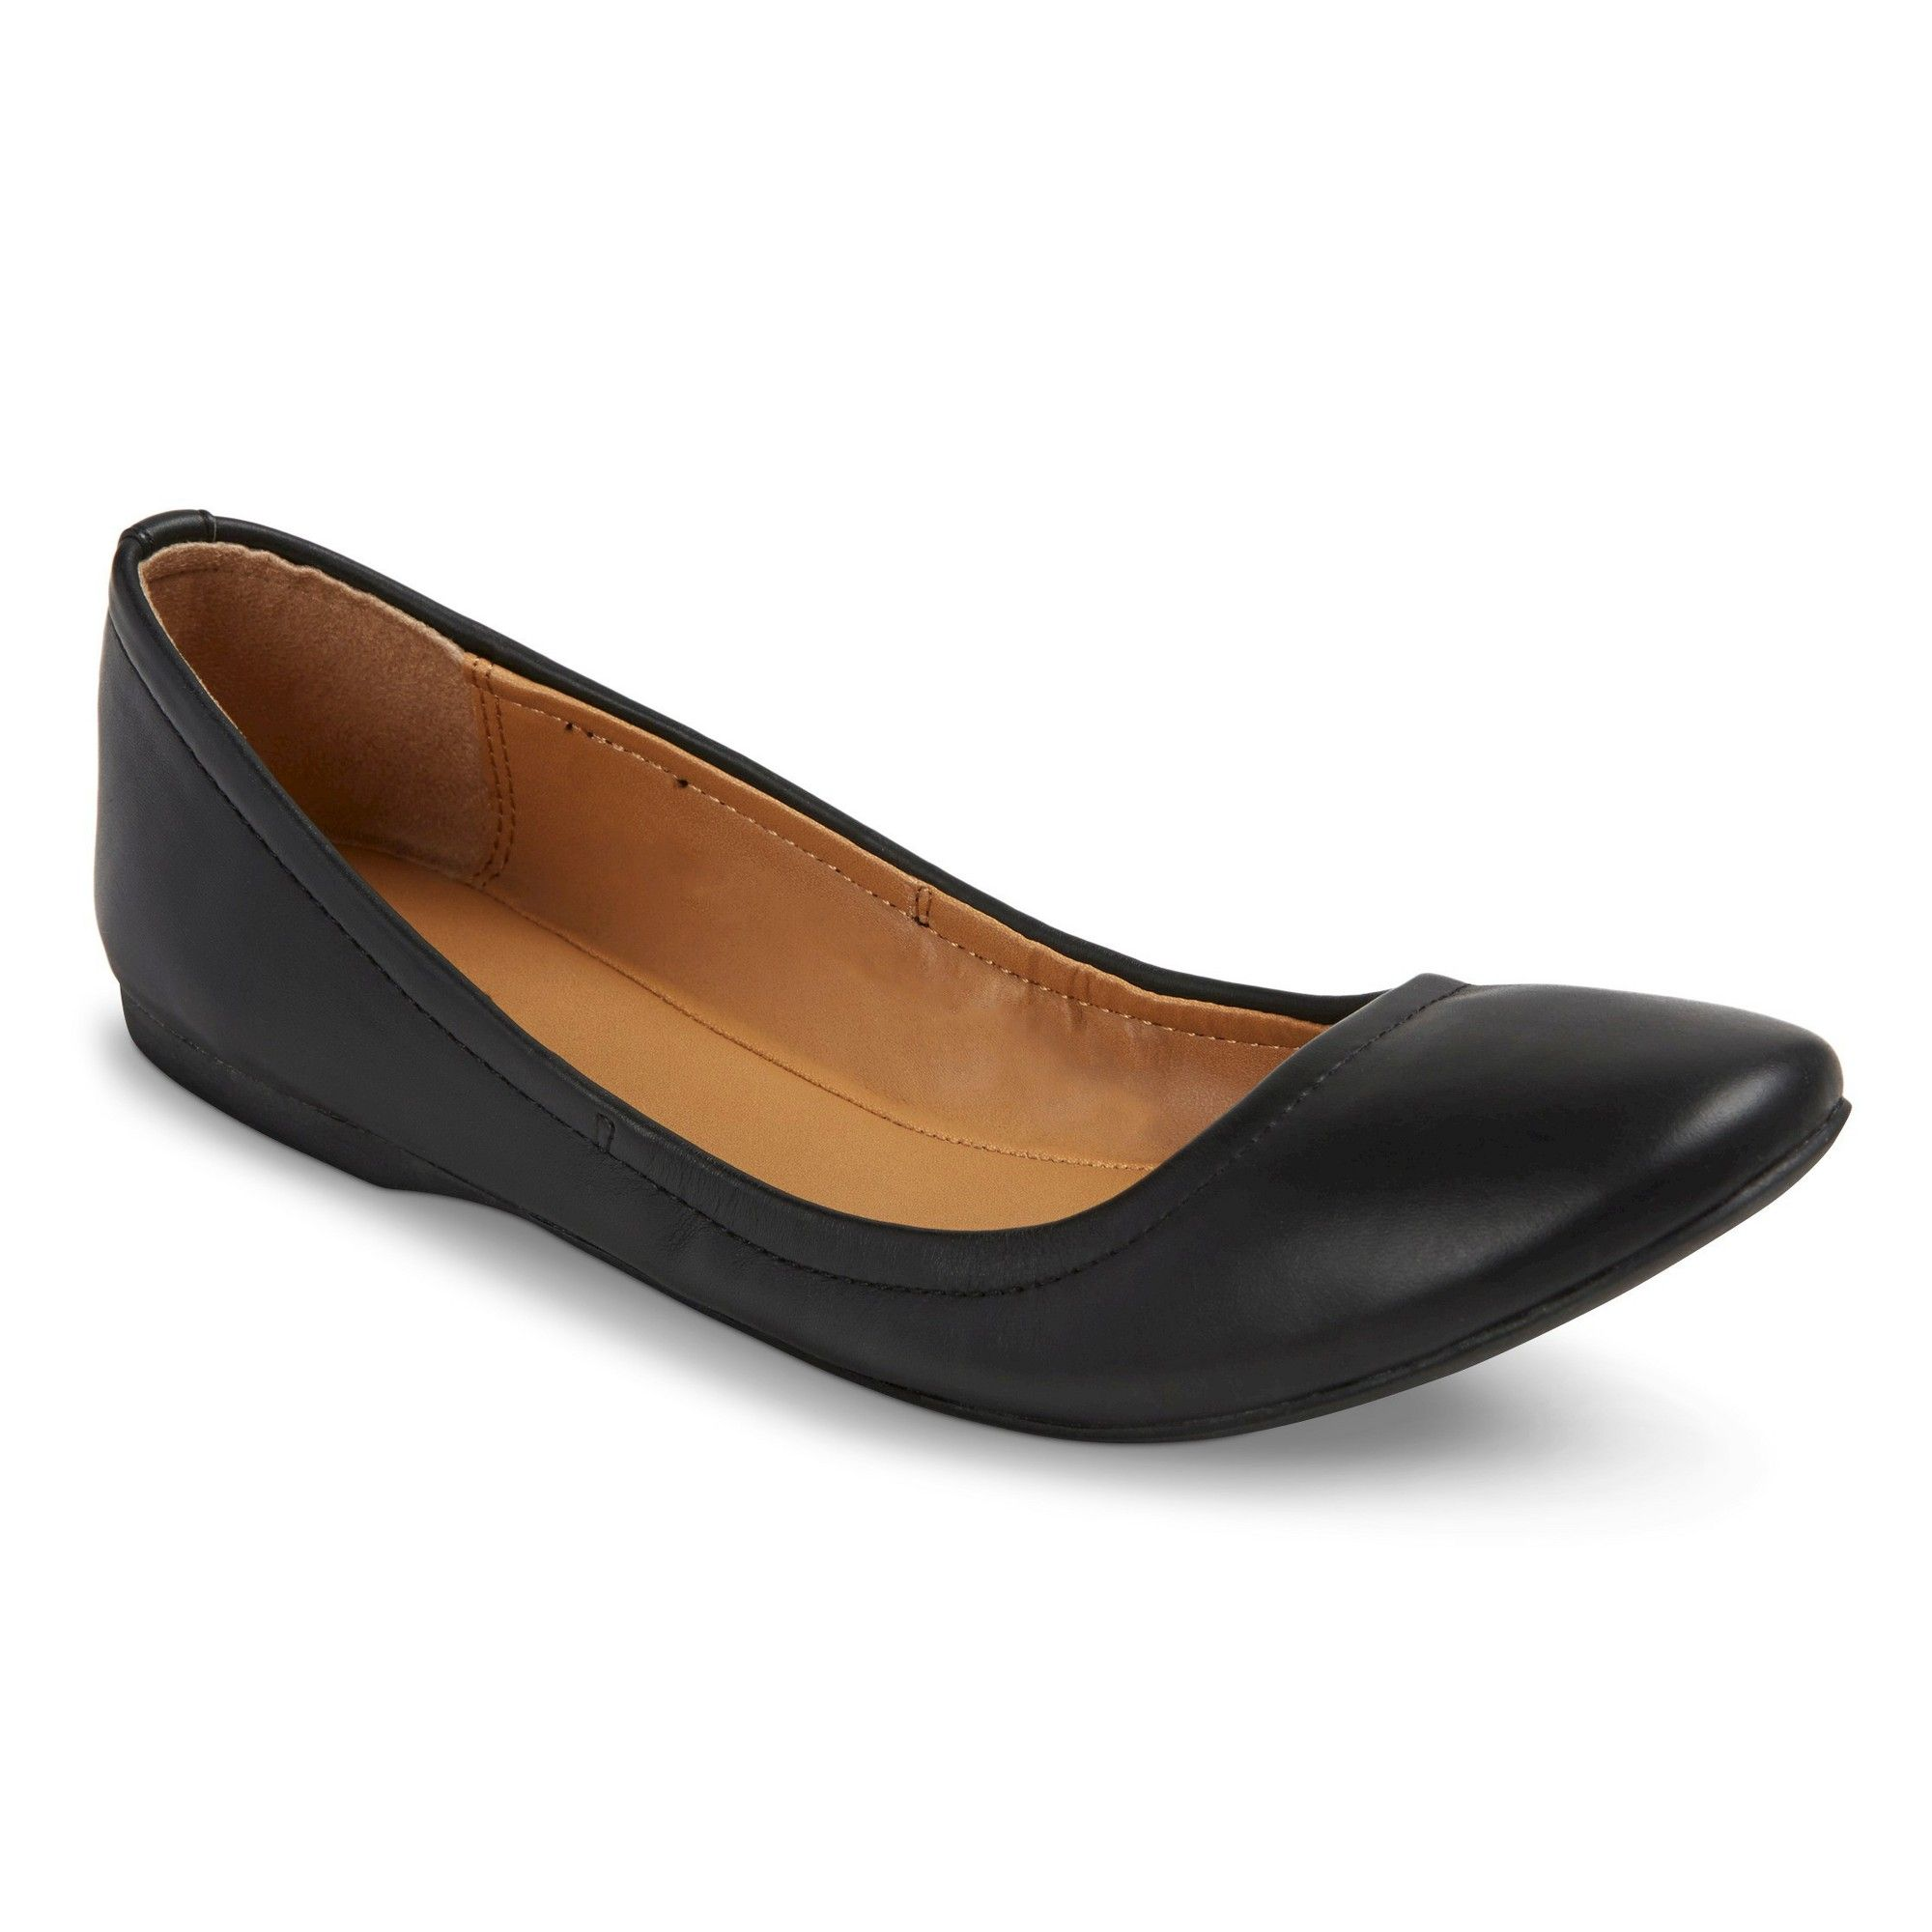 3297769835cd Women s Ona Scrunch Ballet Flats - Mossimo Supply Co. Black 9 ...